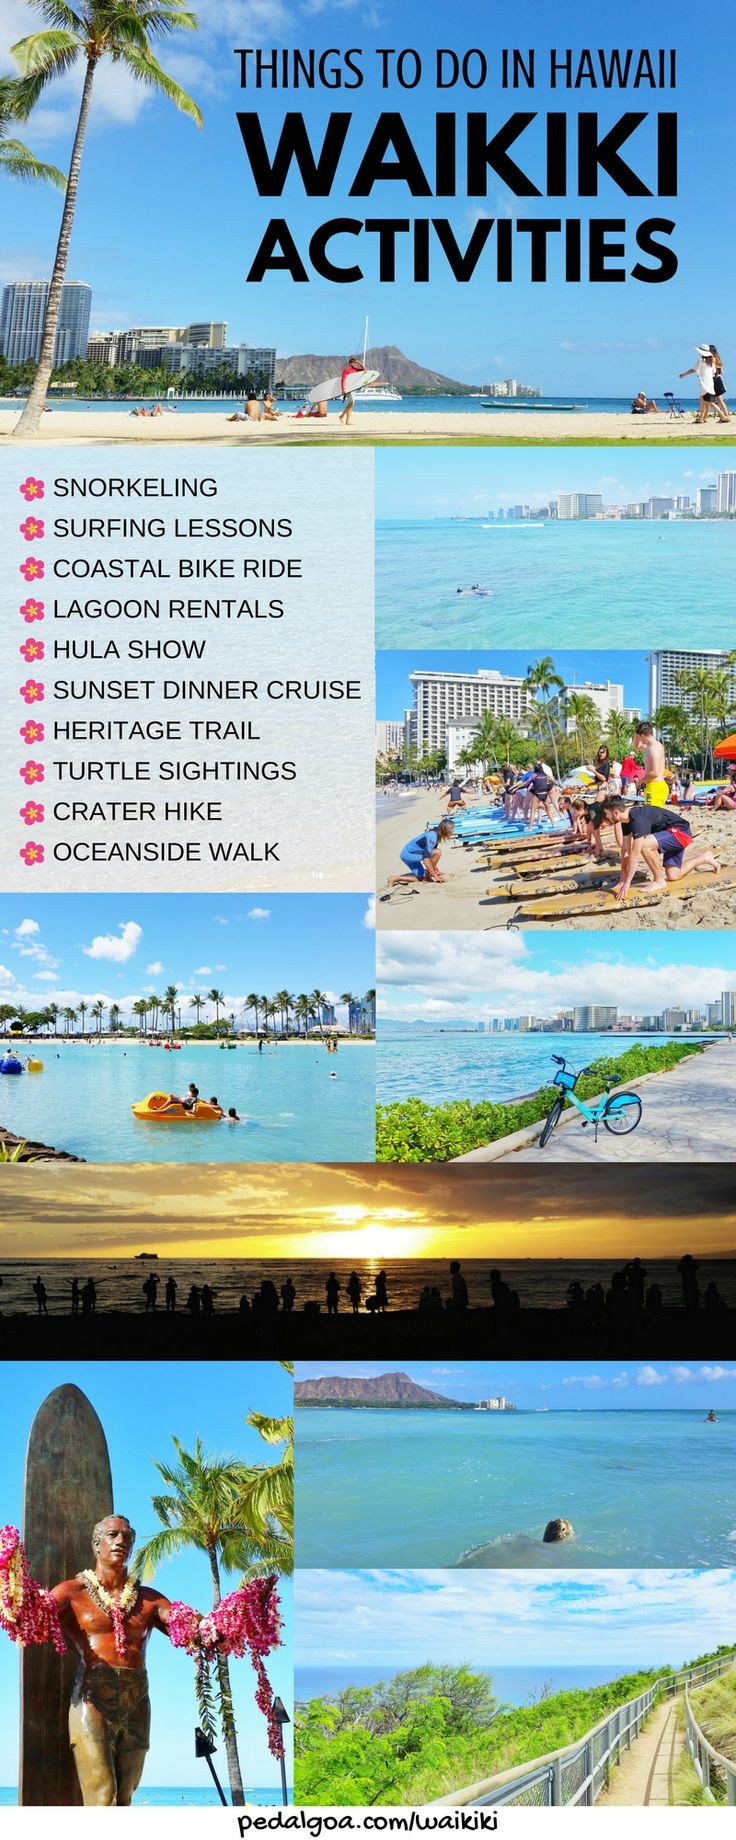 Best Waikiki activities, list. Best things to do in Hawaii. Planning Hawaii itinerary - Waikiki in one week: Oahu Hawaii vacation tips, ideas. Hikes, snorkeling beach, surf, biking. Cheap, free activities on a budget. Tours. With kids, families. Later shopping, food, eating, restaurants! USA bucket list destinations, honeymoon. Also what to wear in Hawaii, what to pack for Hawaii packing list. Walk Hilton Hawaiian Village to Sheraton. Waikiki Travel Guide. #hawaii #oahu #waikiki